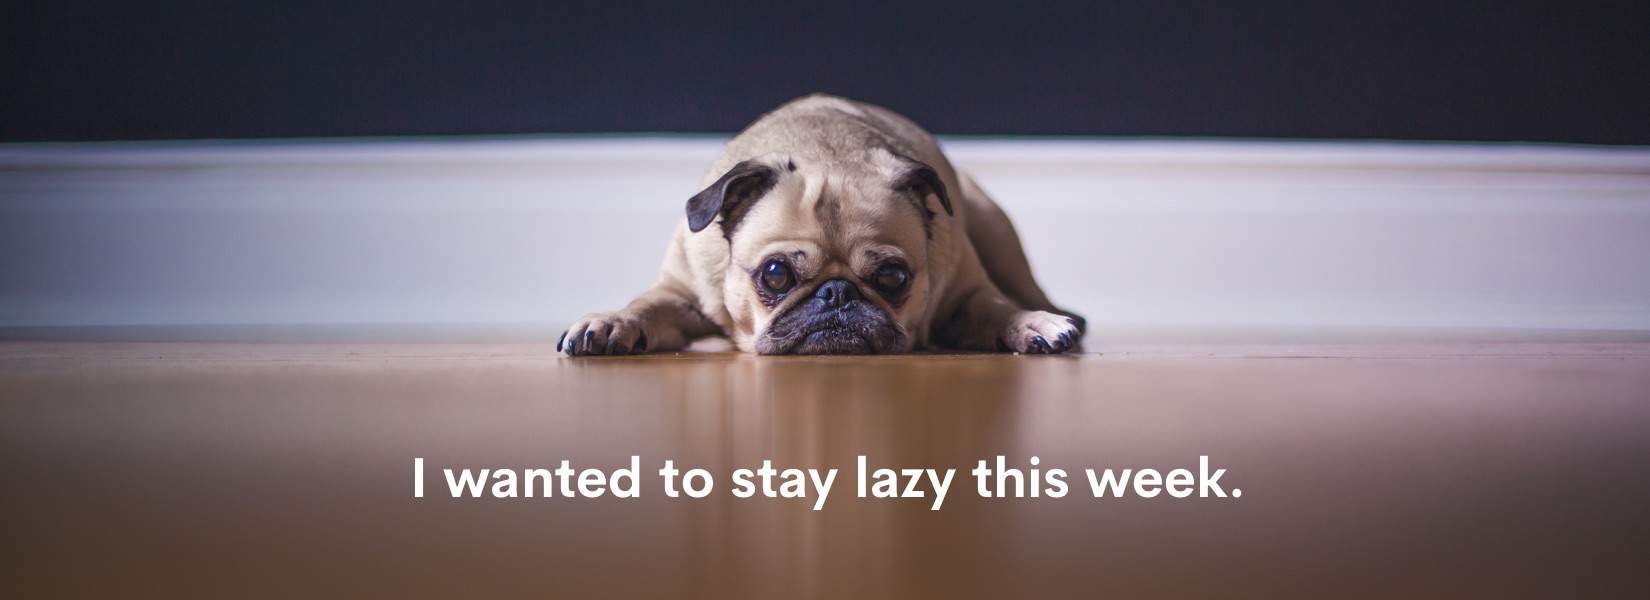 I wanted to stay lazy this week.